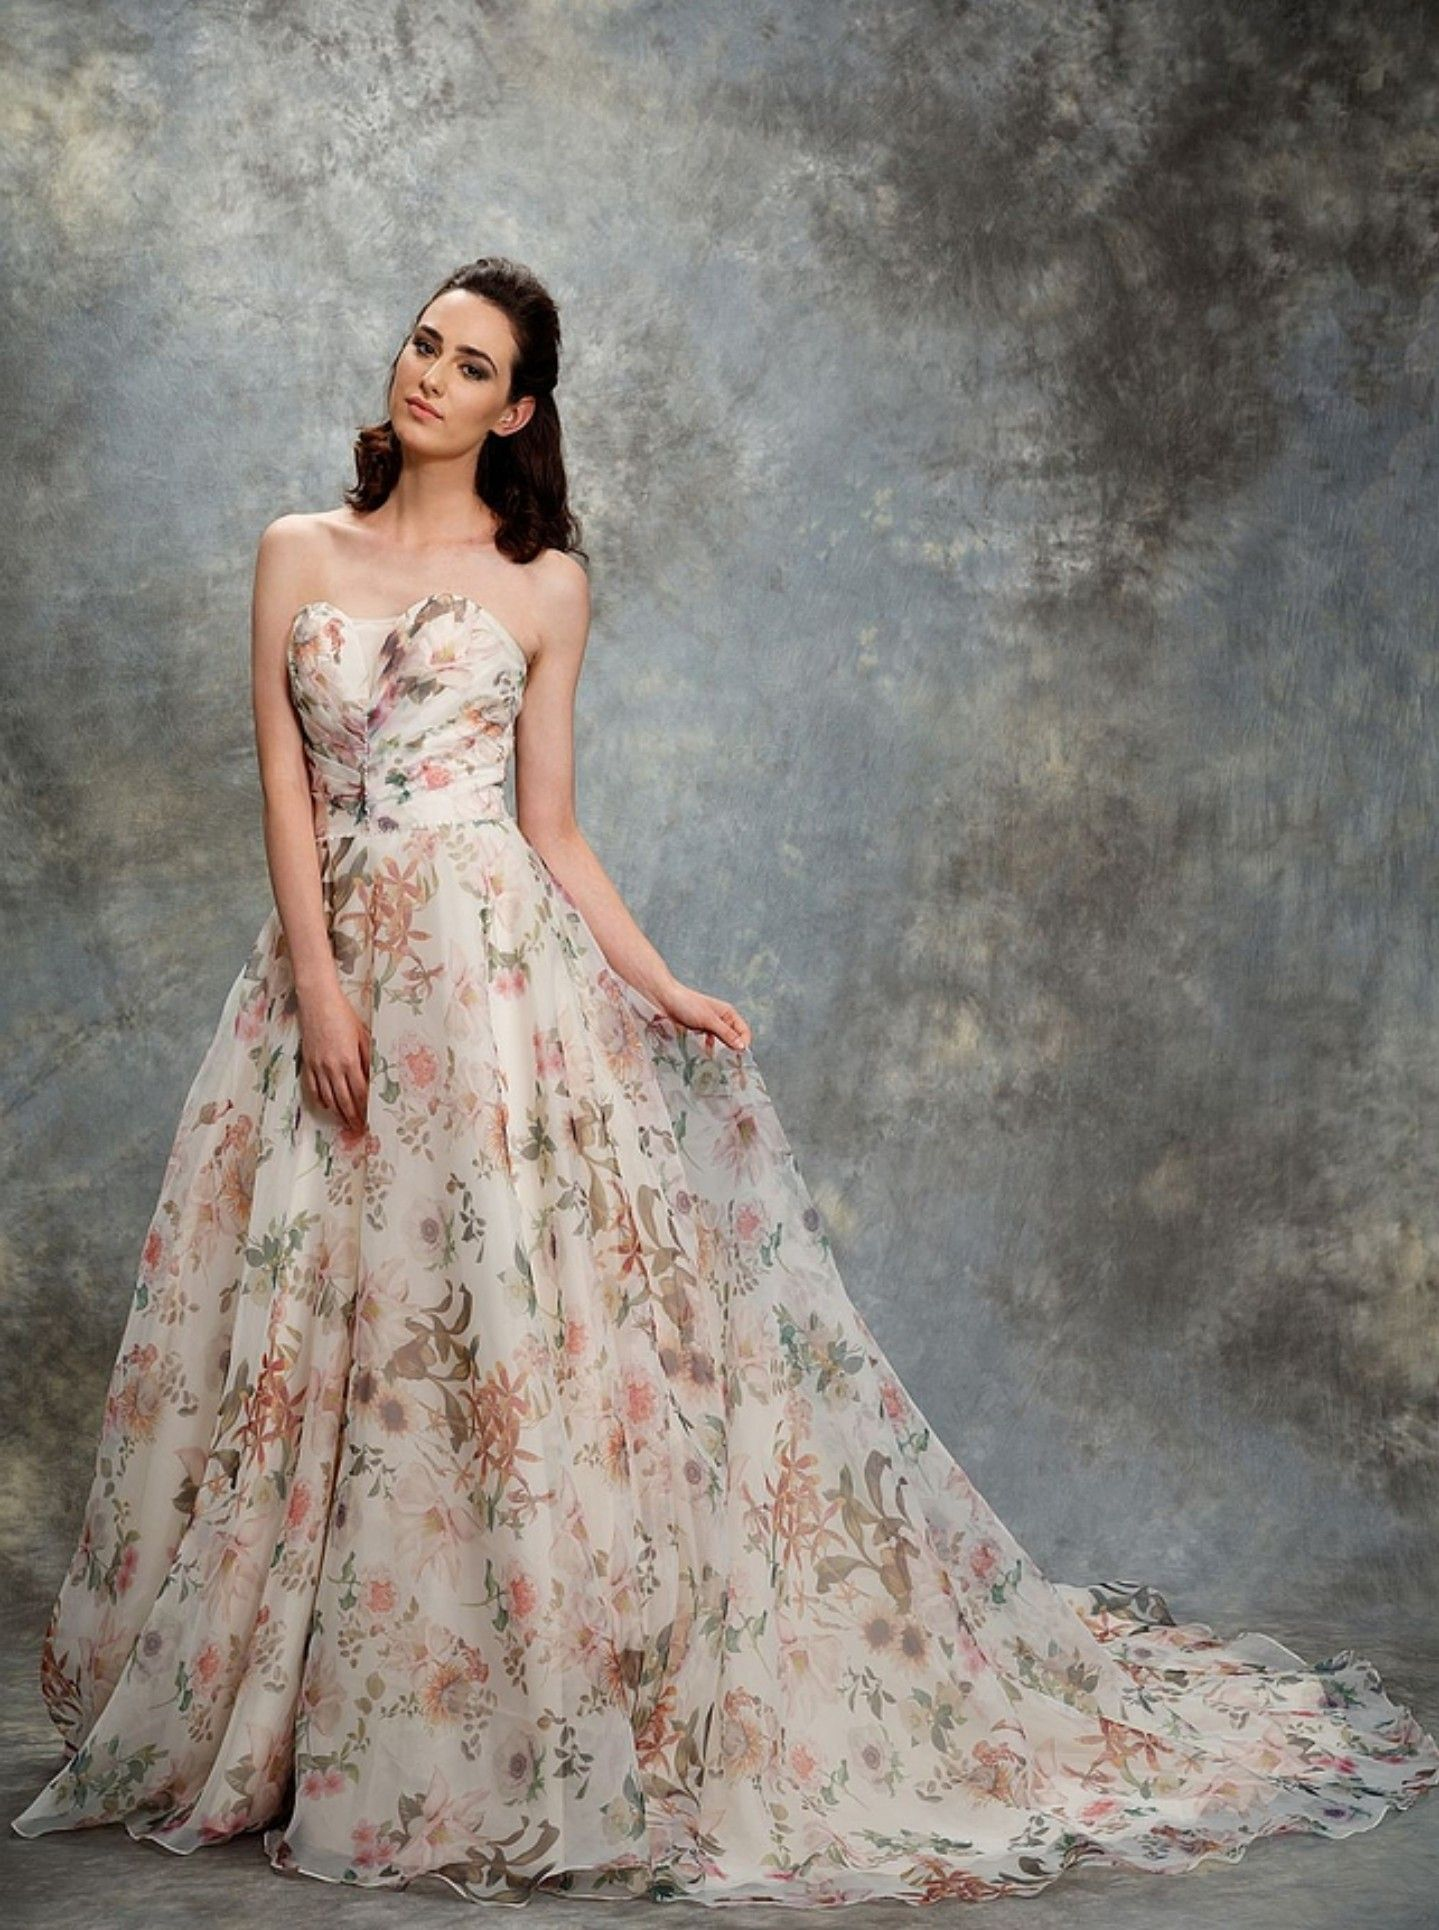 Liz martinez wedding dress  Printed floral wedding dress  dresses  Pinterest  Floral